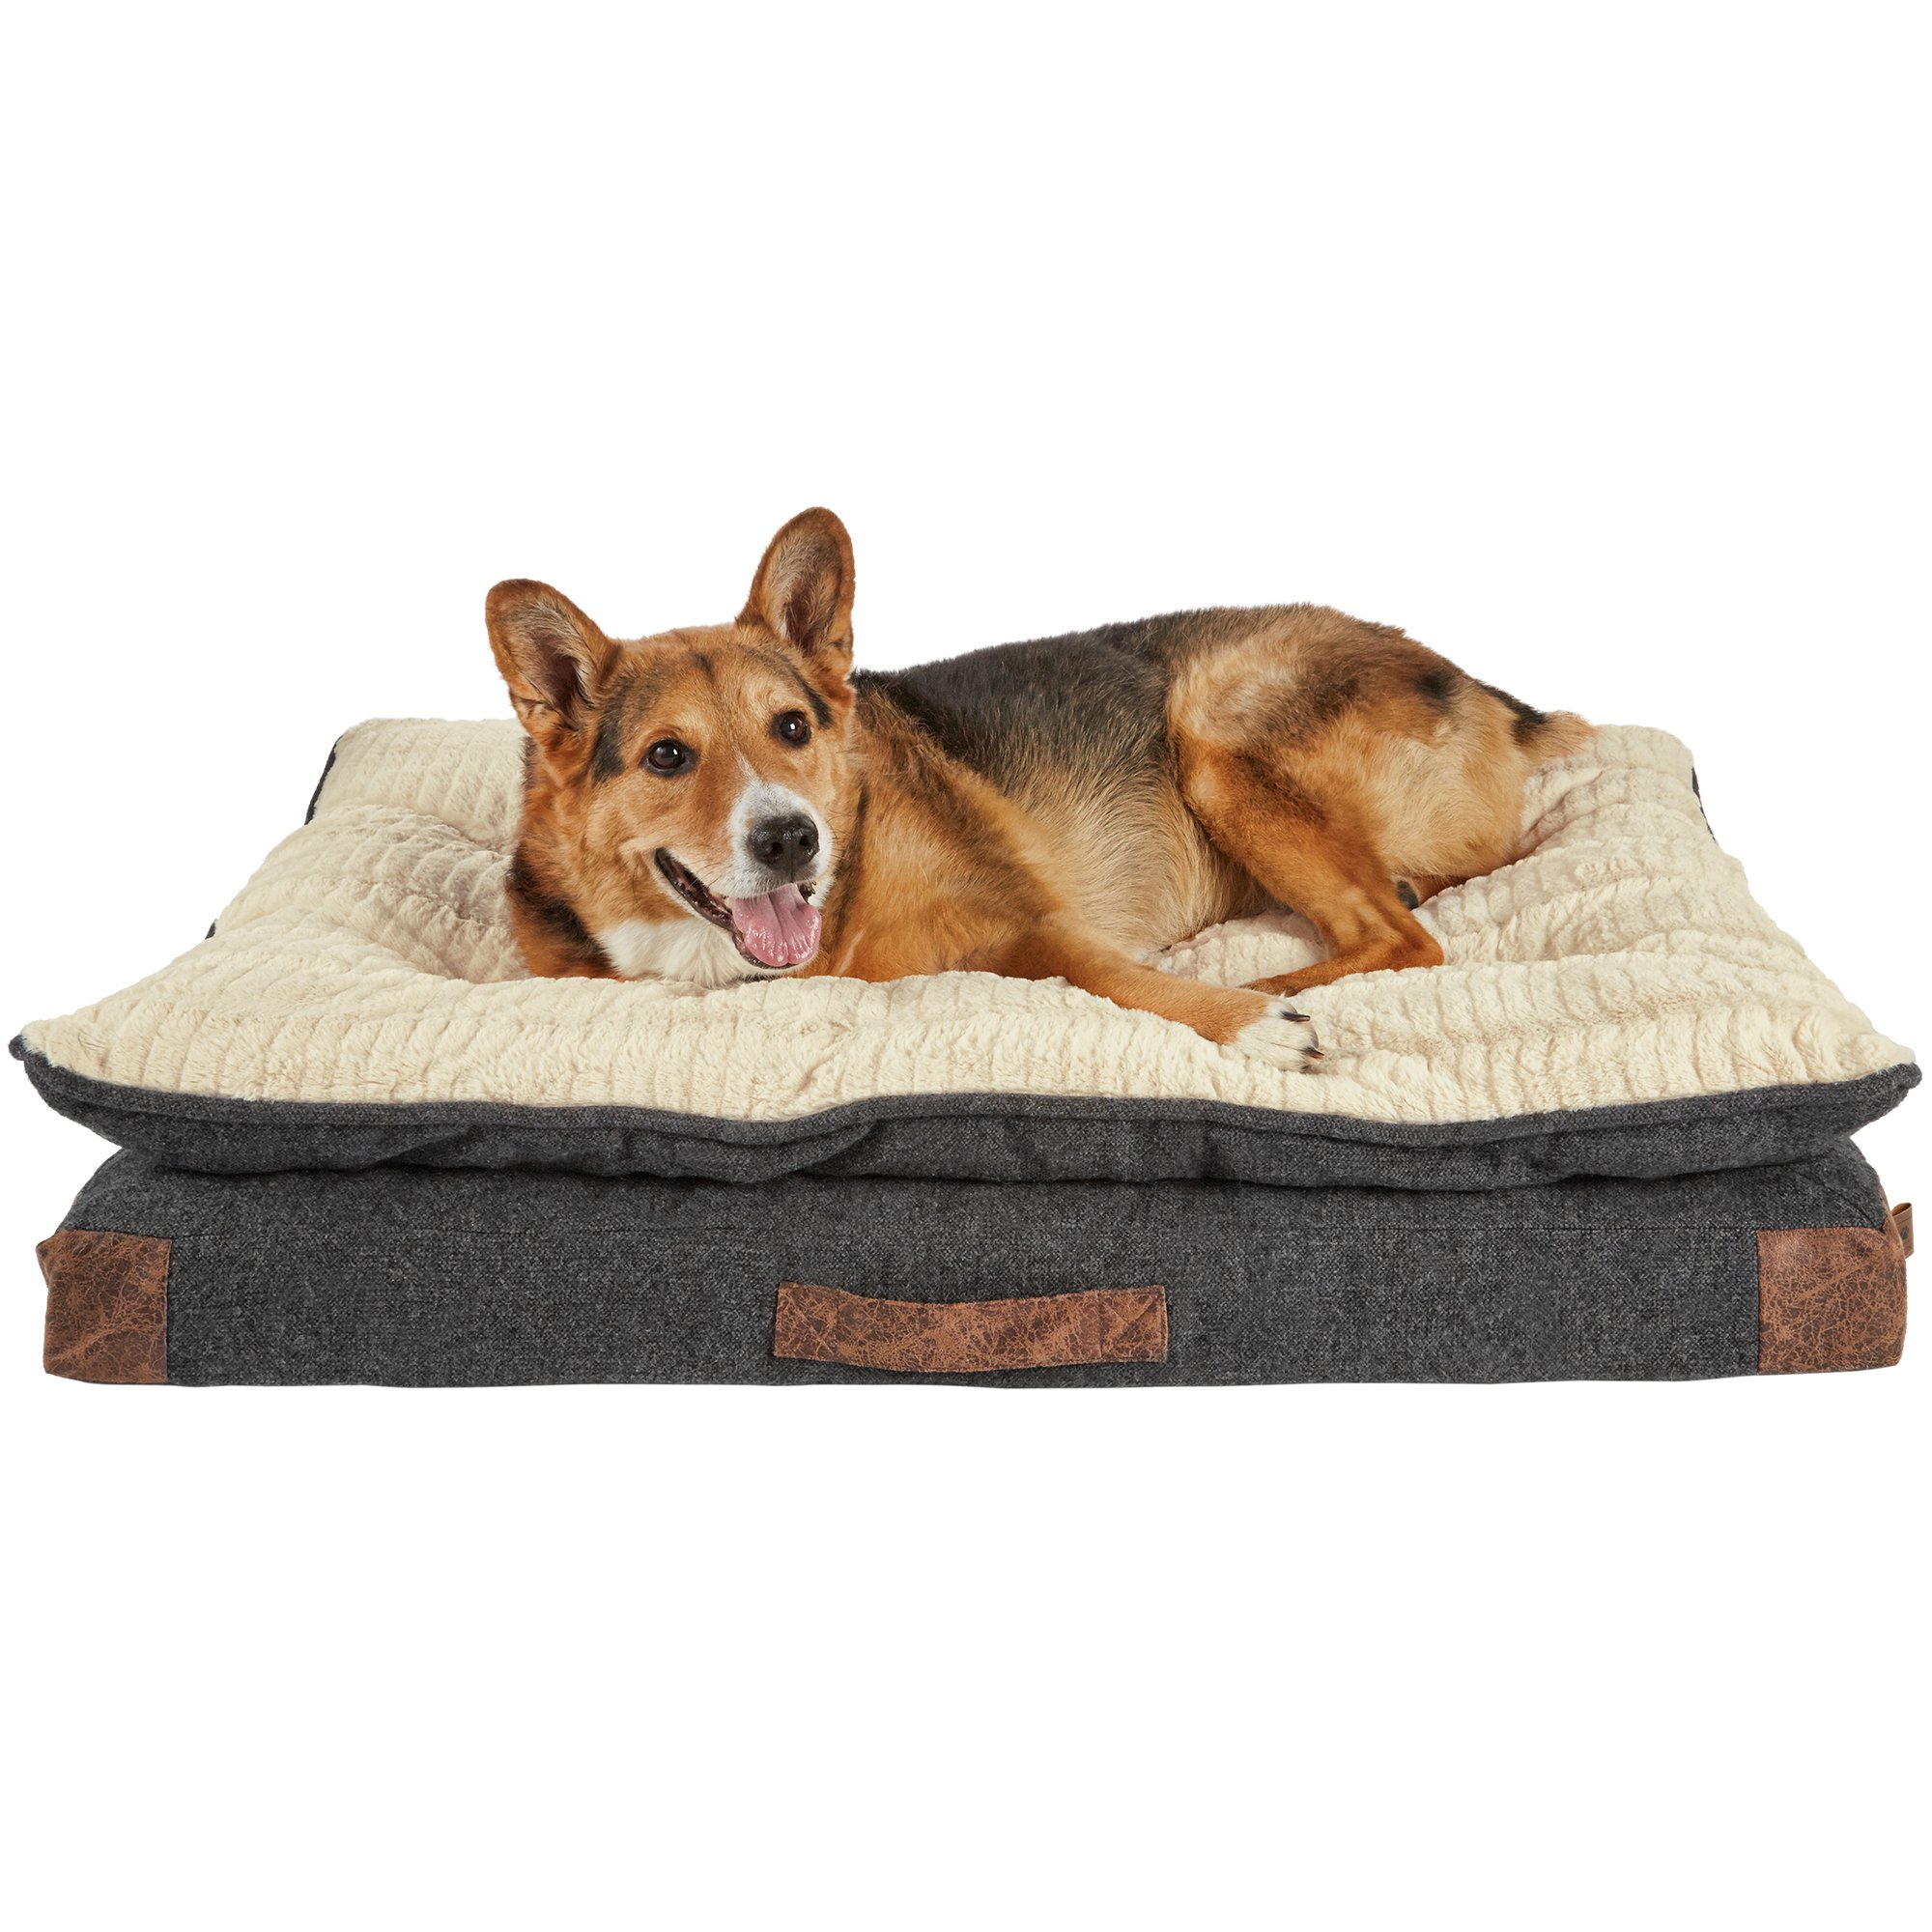 a1323653ae4e Dog Beds & Bedding: Best Large & Small Dog Beds on Sale | Petco